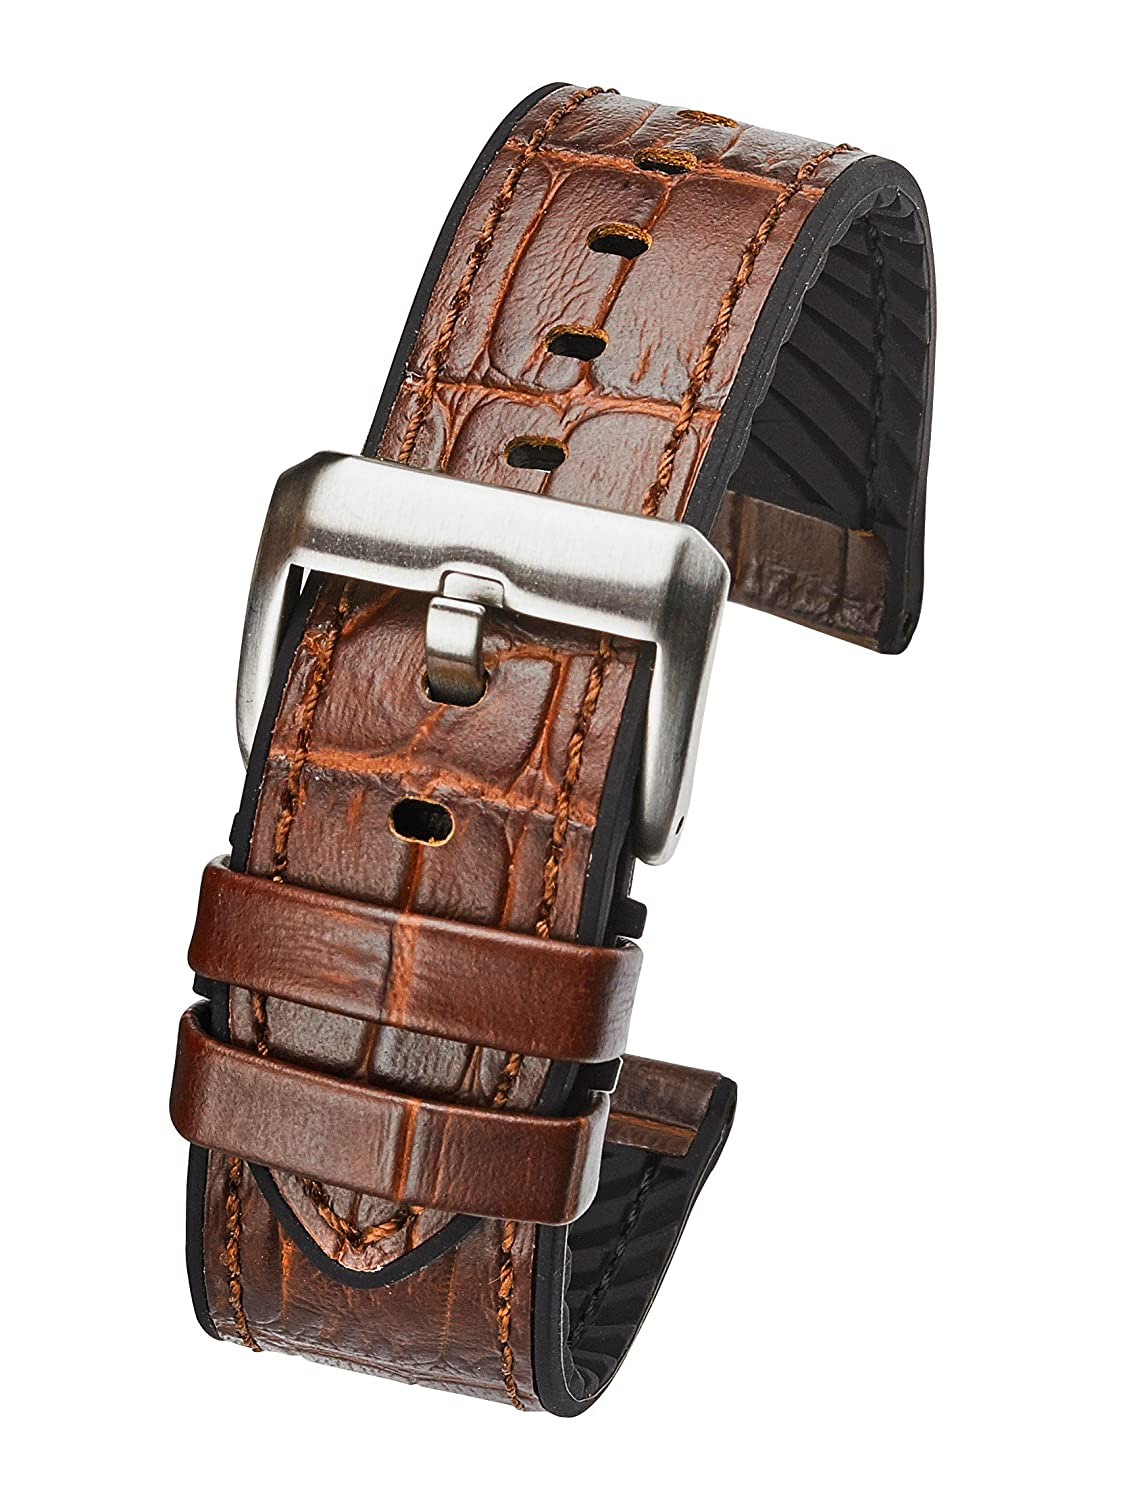 Genuine Alligator Grain Leather Watch Band withシリコン裏地 – ブラウン – 20 mm、22 mm , 24 mm 20mm  20mm B074SBQRM2